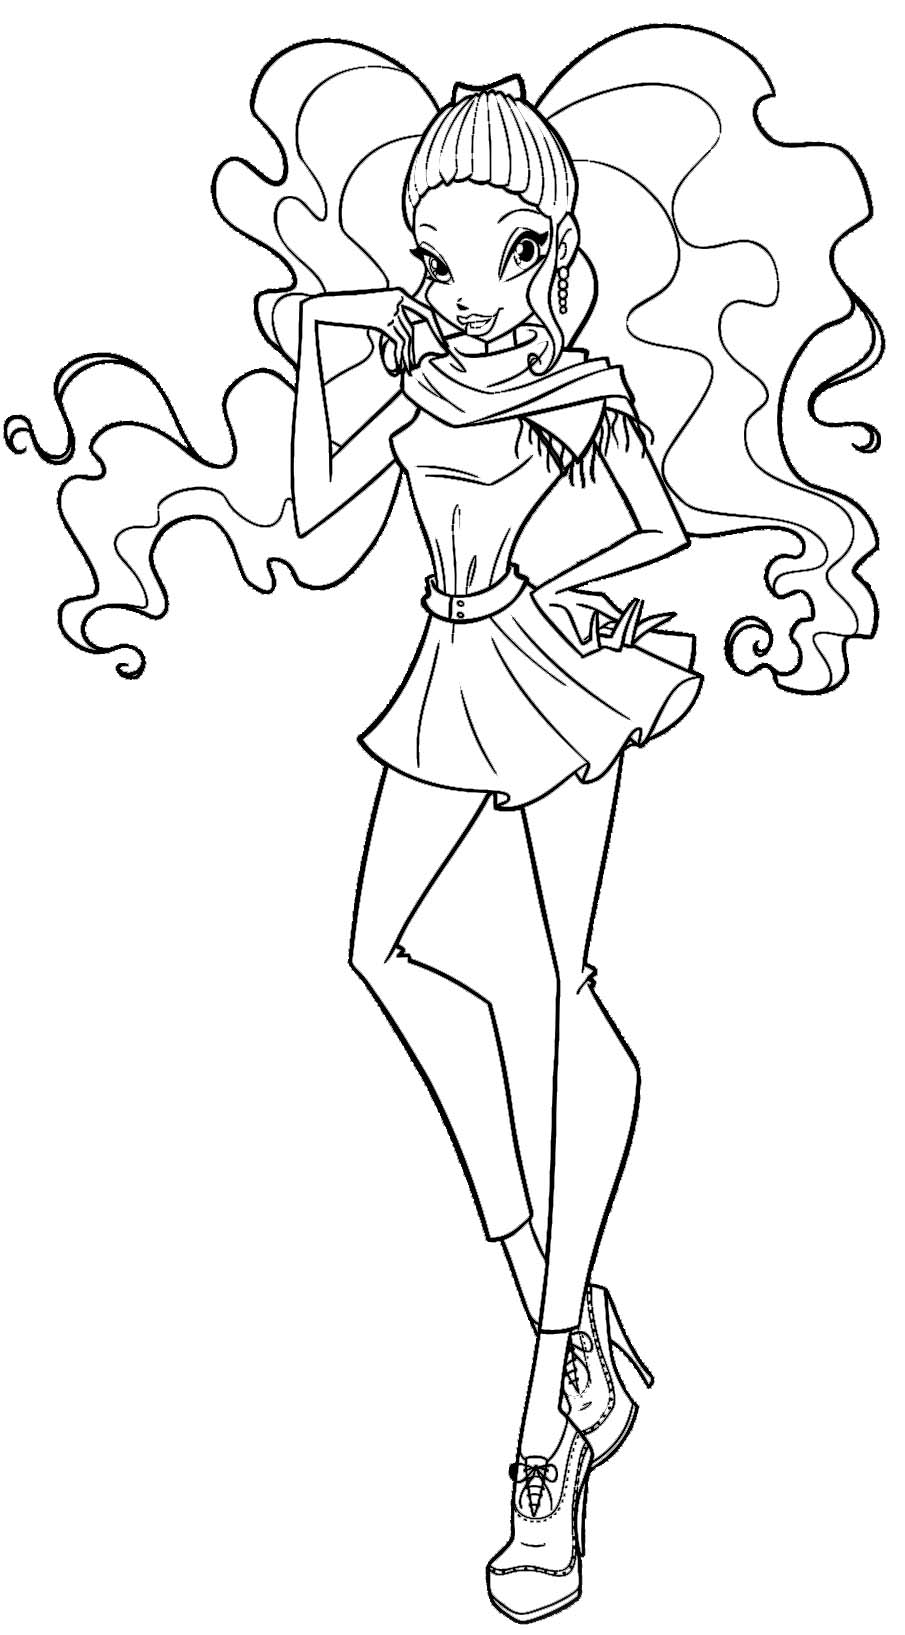 layla winx coloring pages - photo#6